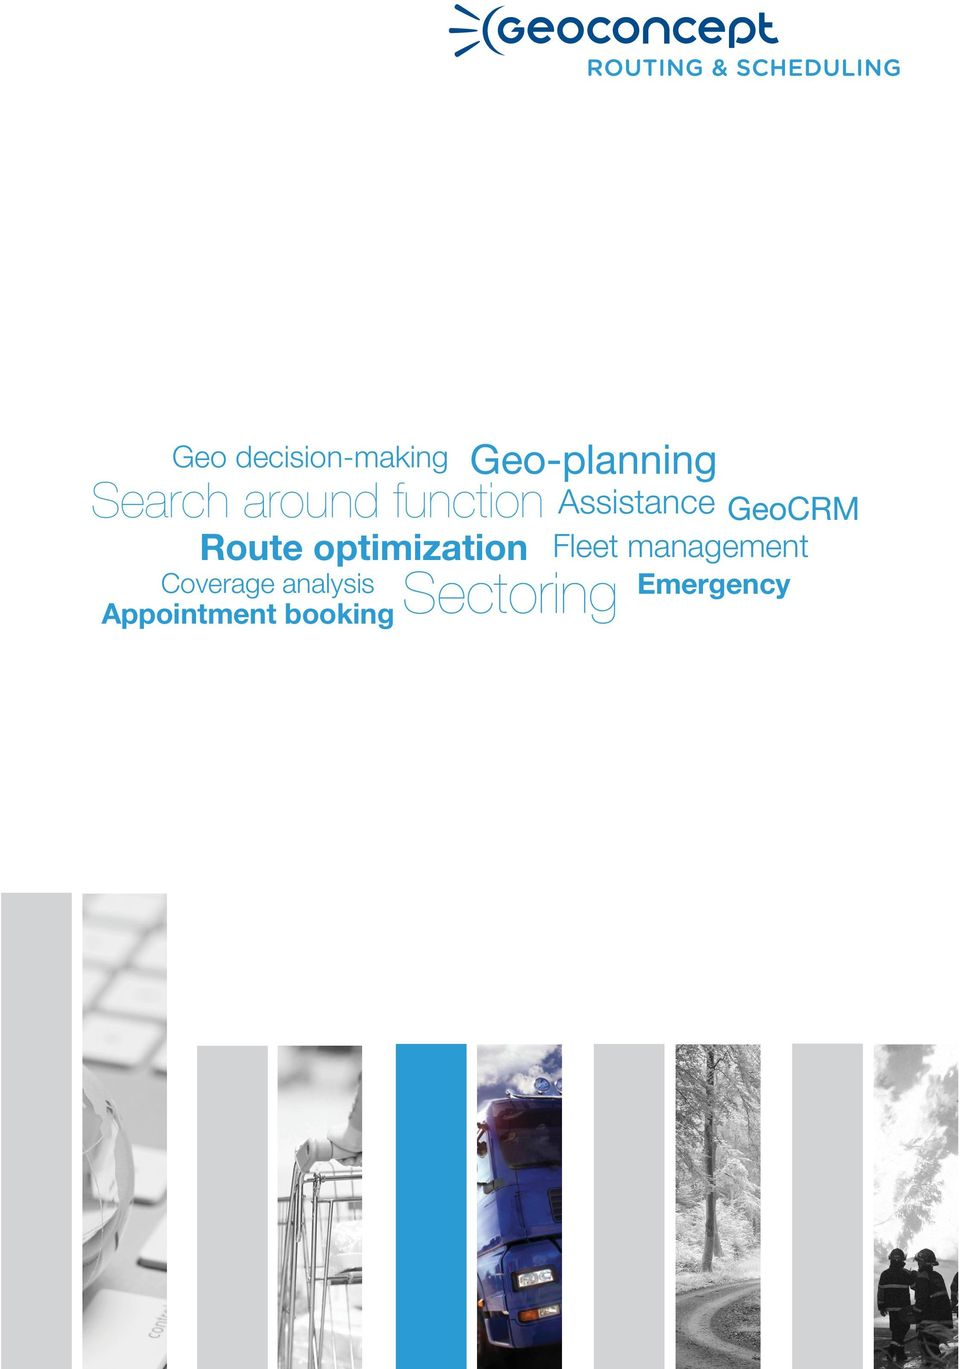 analysis Appointment booking Geo-planning